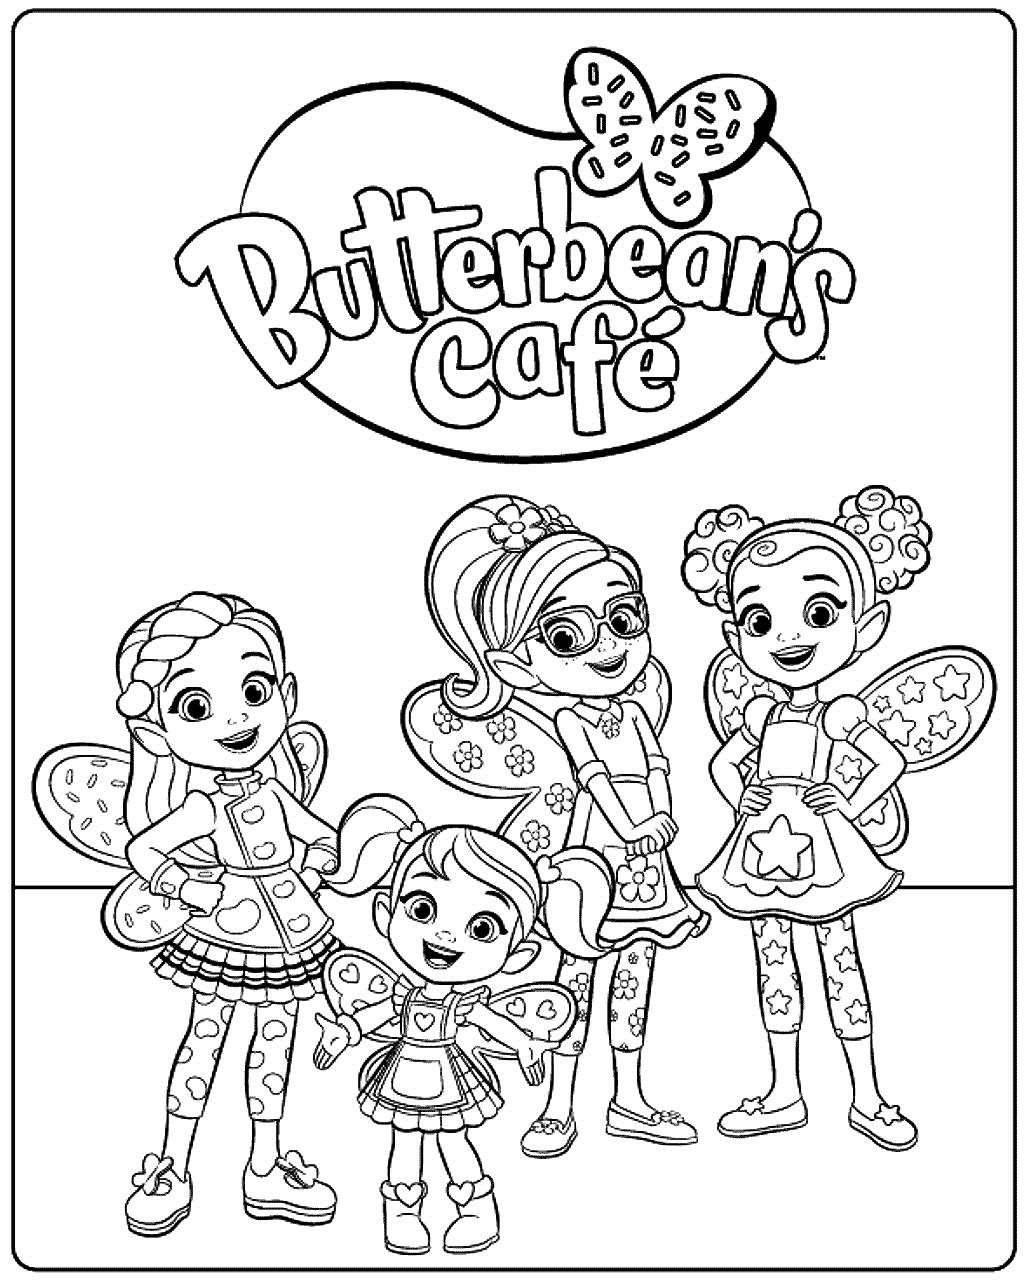 Free Butterbean S Cafe Coloring Pages Printable